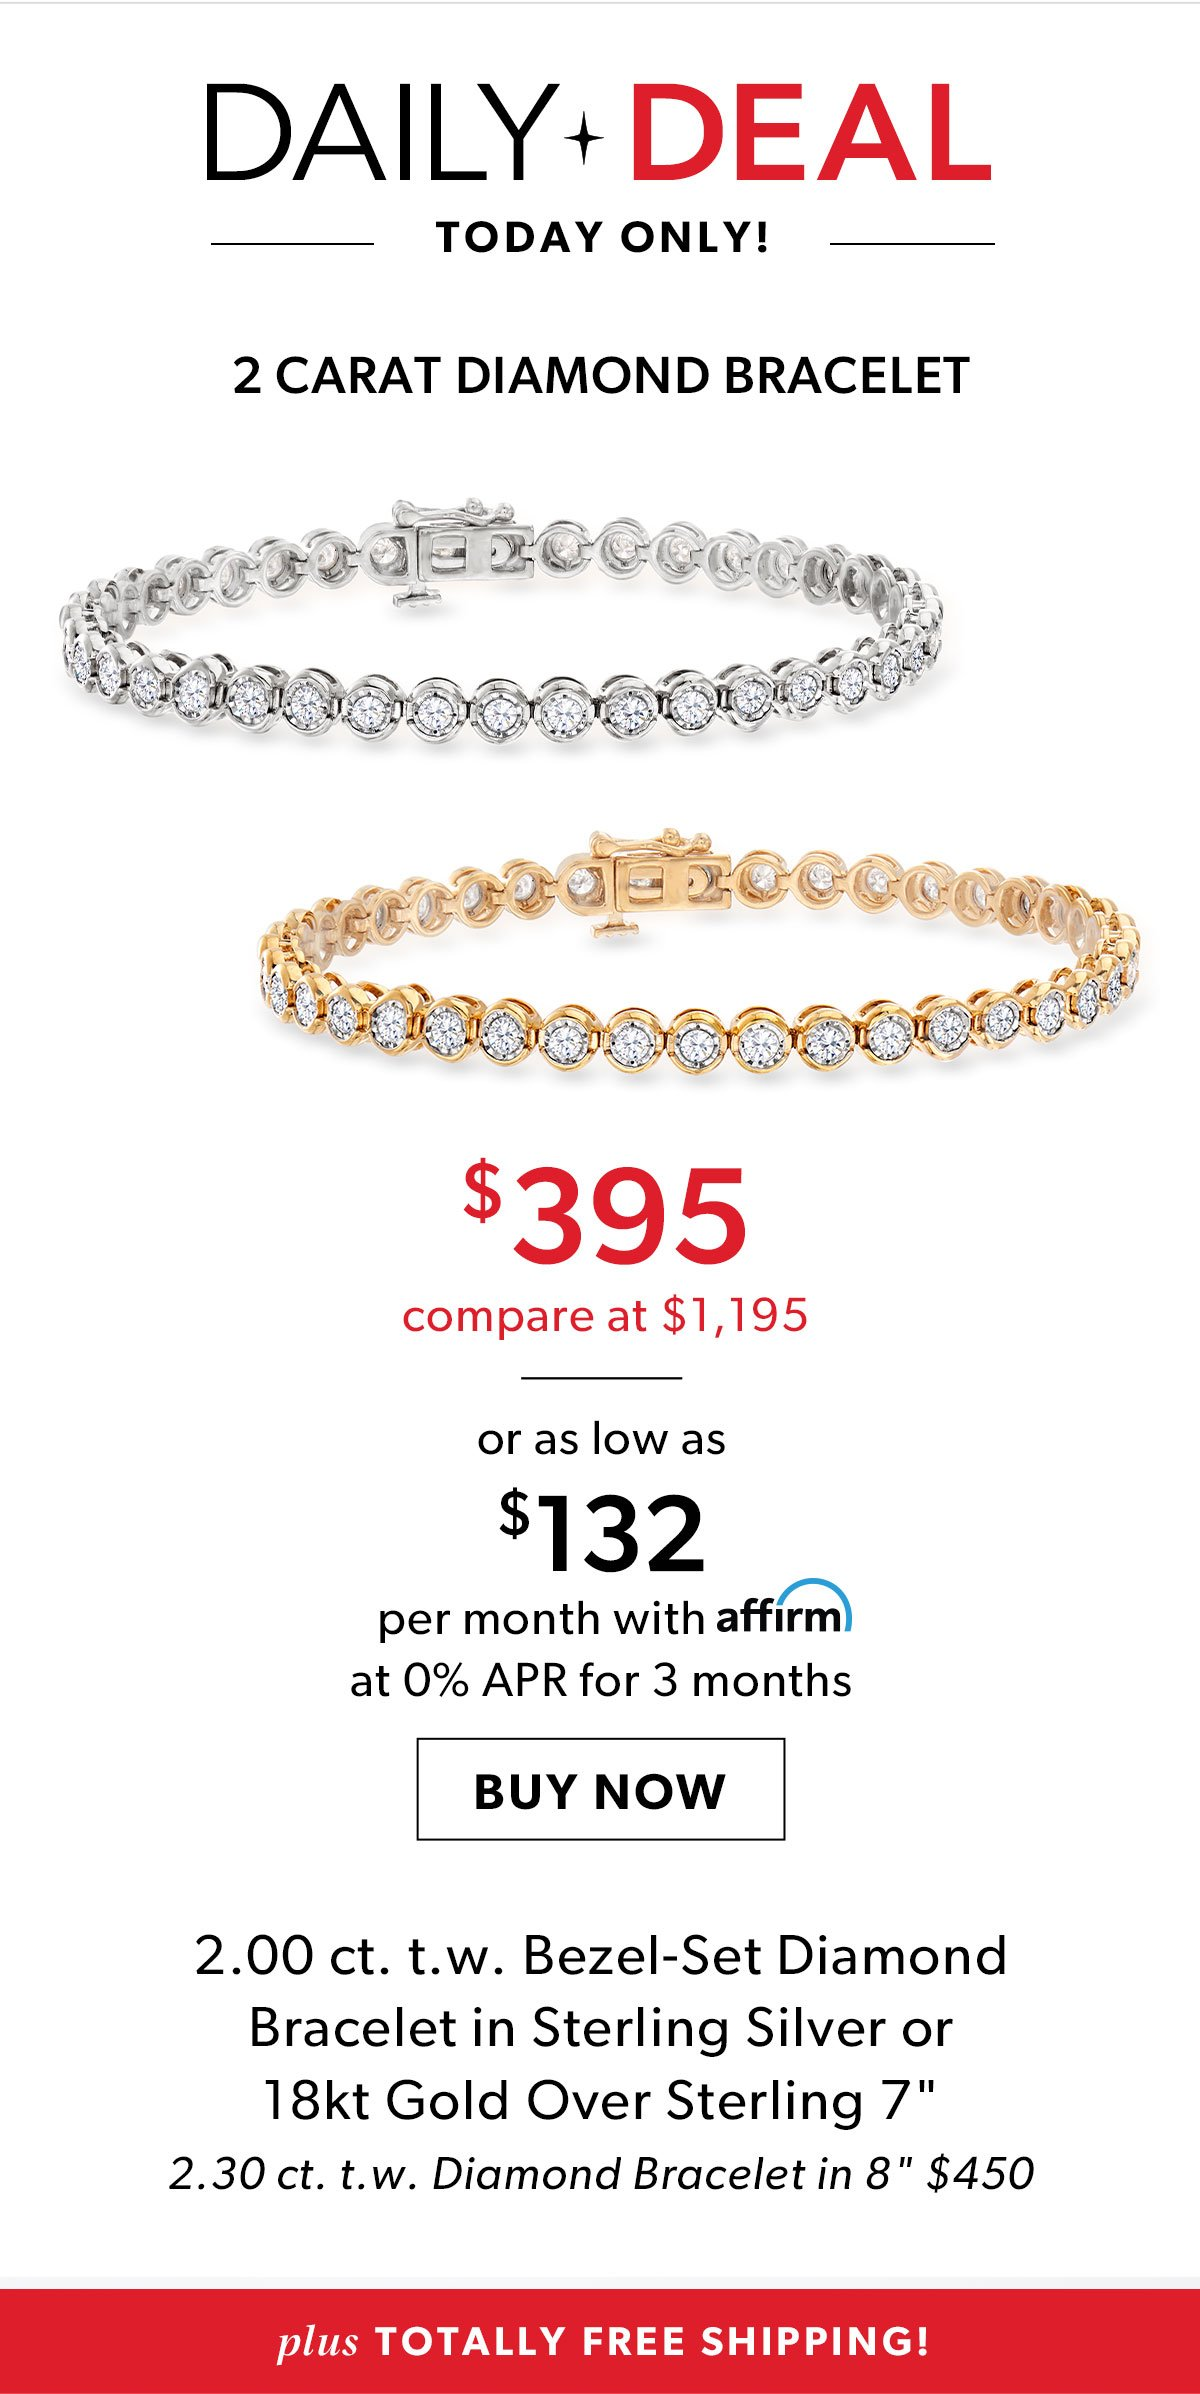 2 Carat Diamond Bracelet. $395 or as low as $132 per month with Affirm at 0% APR for 3 months. Buy Now